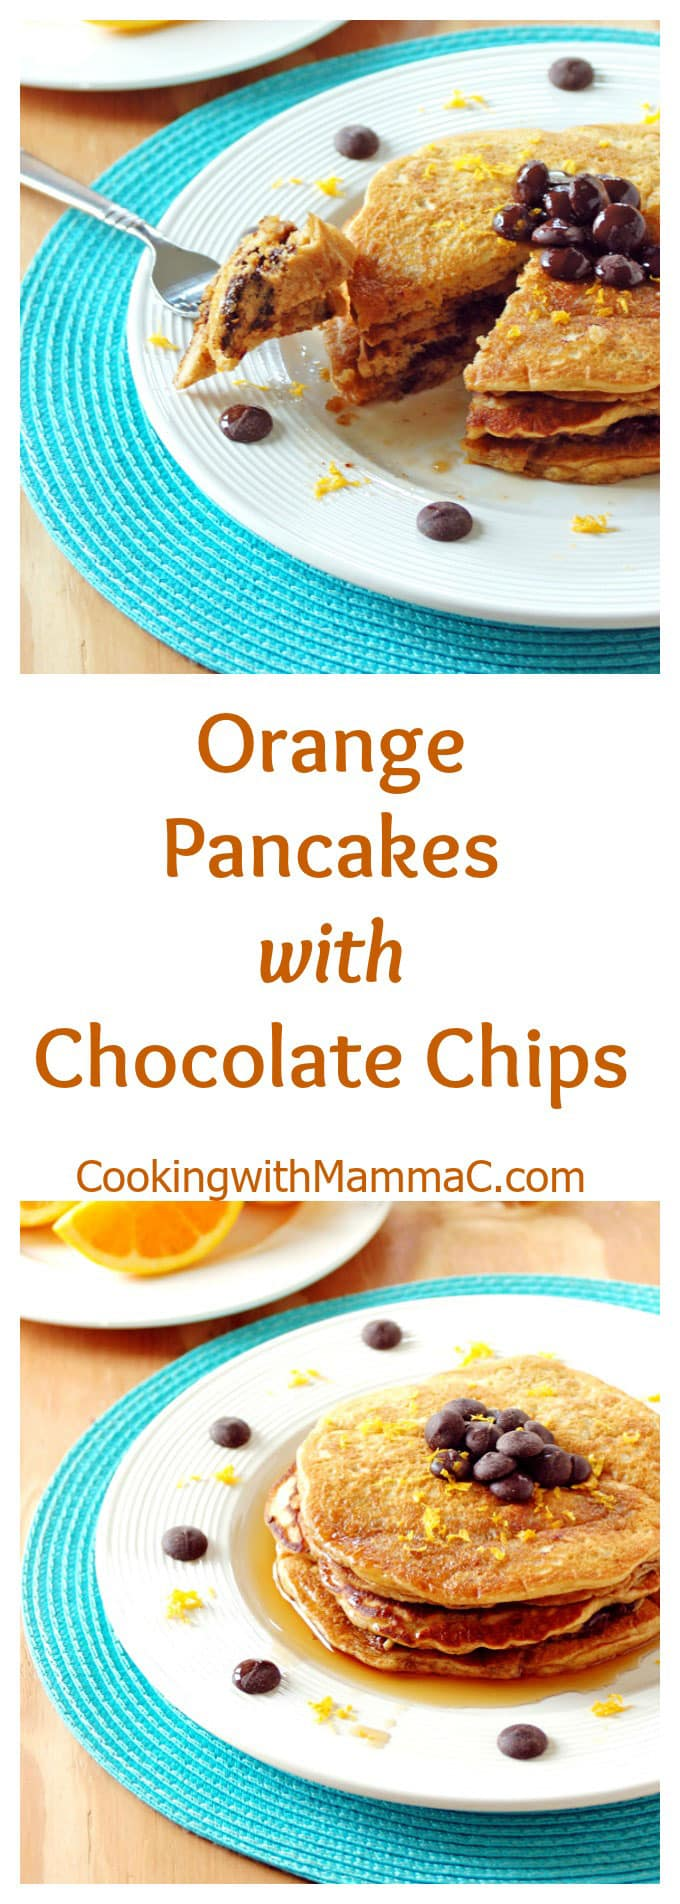 Orange Pancakes with Chocolate Chips - If you love the chocolate-orange combo, you need to try these! A delicious breakfast made with your choice of white whole wheat or all-purpose flour.